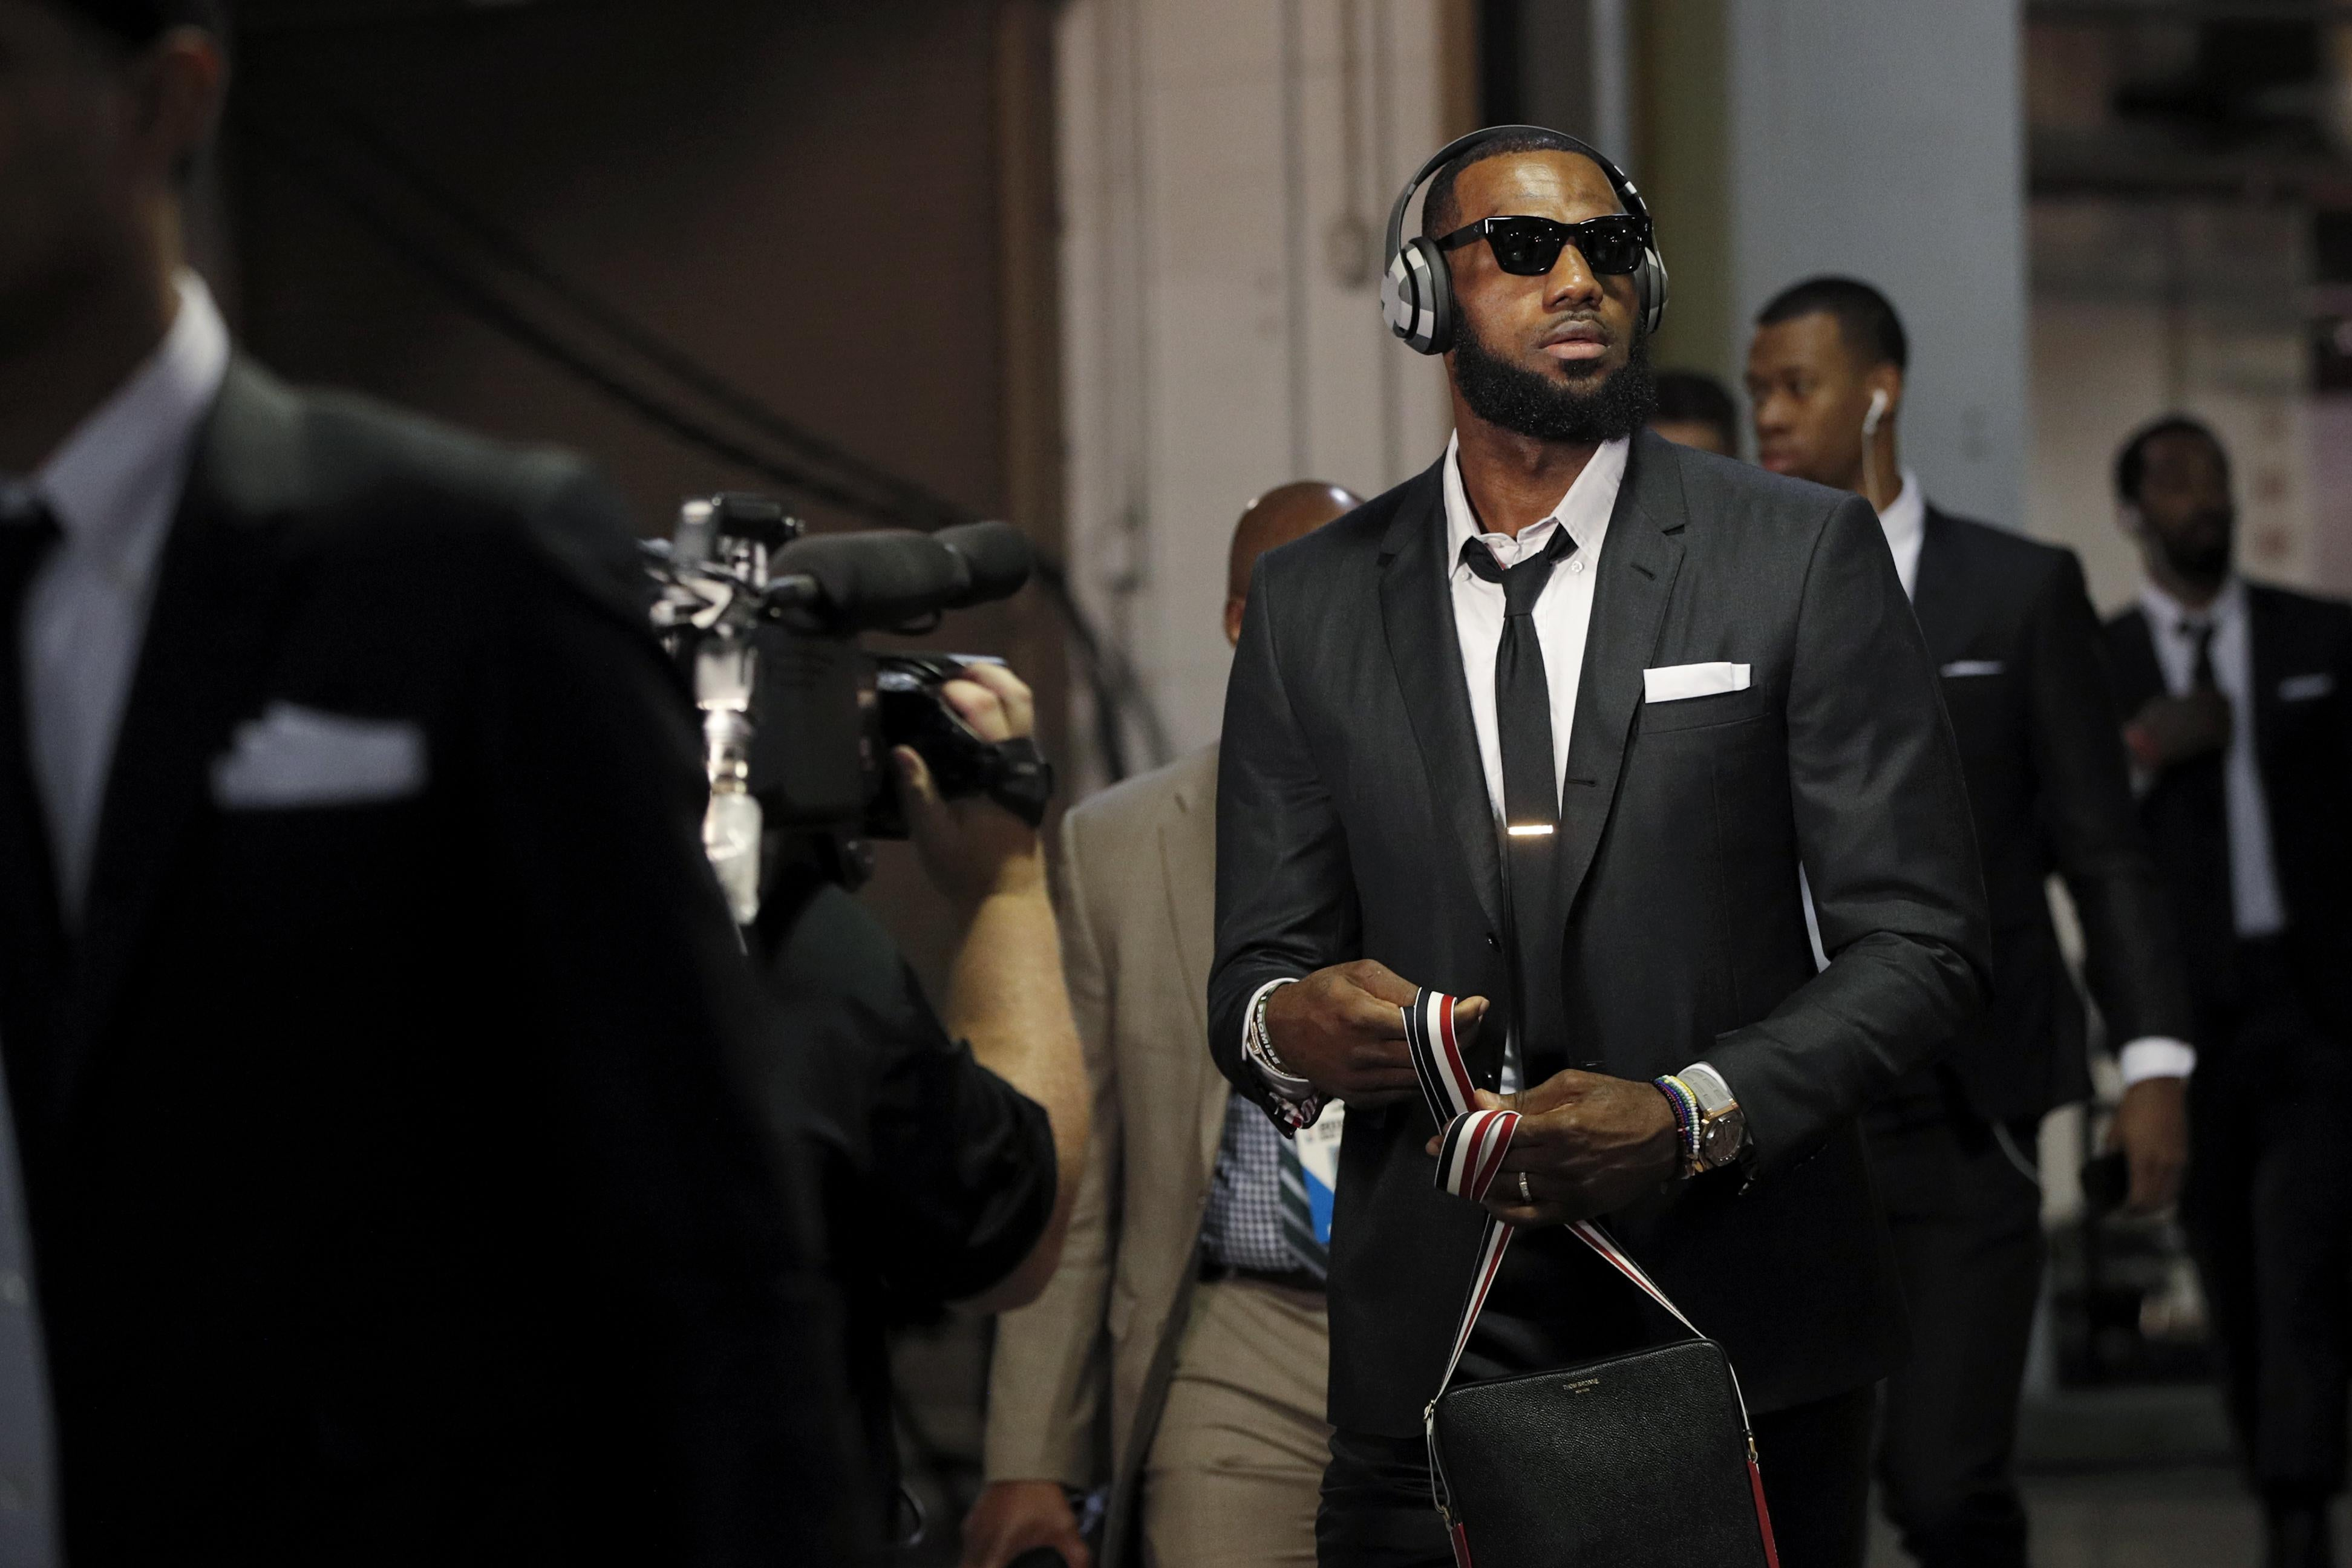 INDIANAPOLIS, IN - APRIL 22: LeBron James of the Cleveland Cavaliers arrives for game four of the NBA Playoffs against the Indiana Pacers at Bankers Life Fieldhouse on April 22, 2018 in Indianapolis, Indiana. NOTE TO USER: User expressly acknowledges and agrees that, by downloading and or using the photograph, User is consenting to the terms and conditions of the Getty Images License Agreement. (Photo by Joe Robbins/Getty Images)